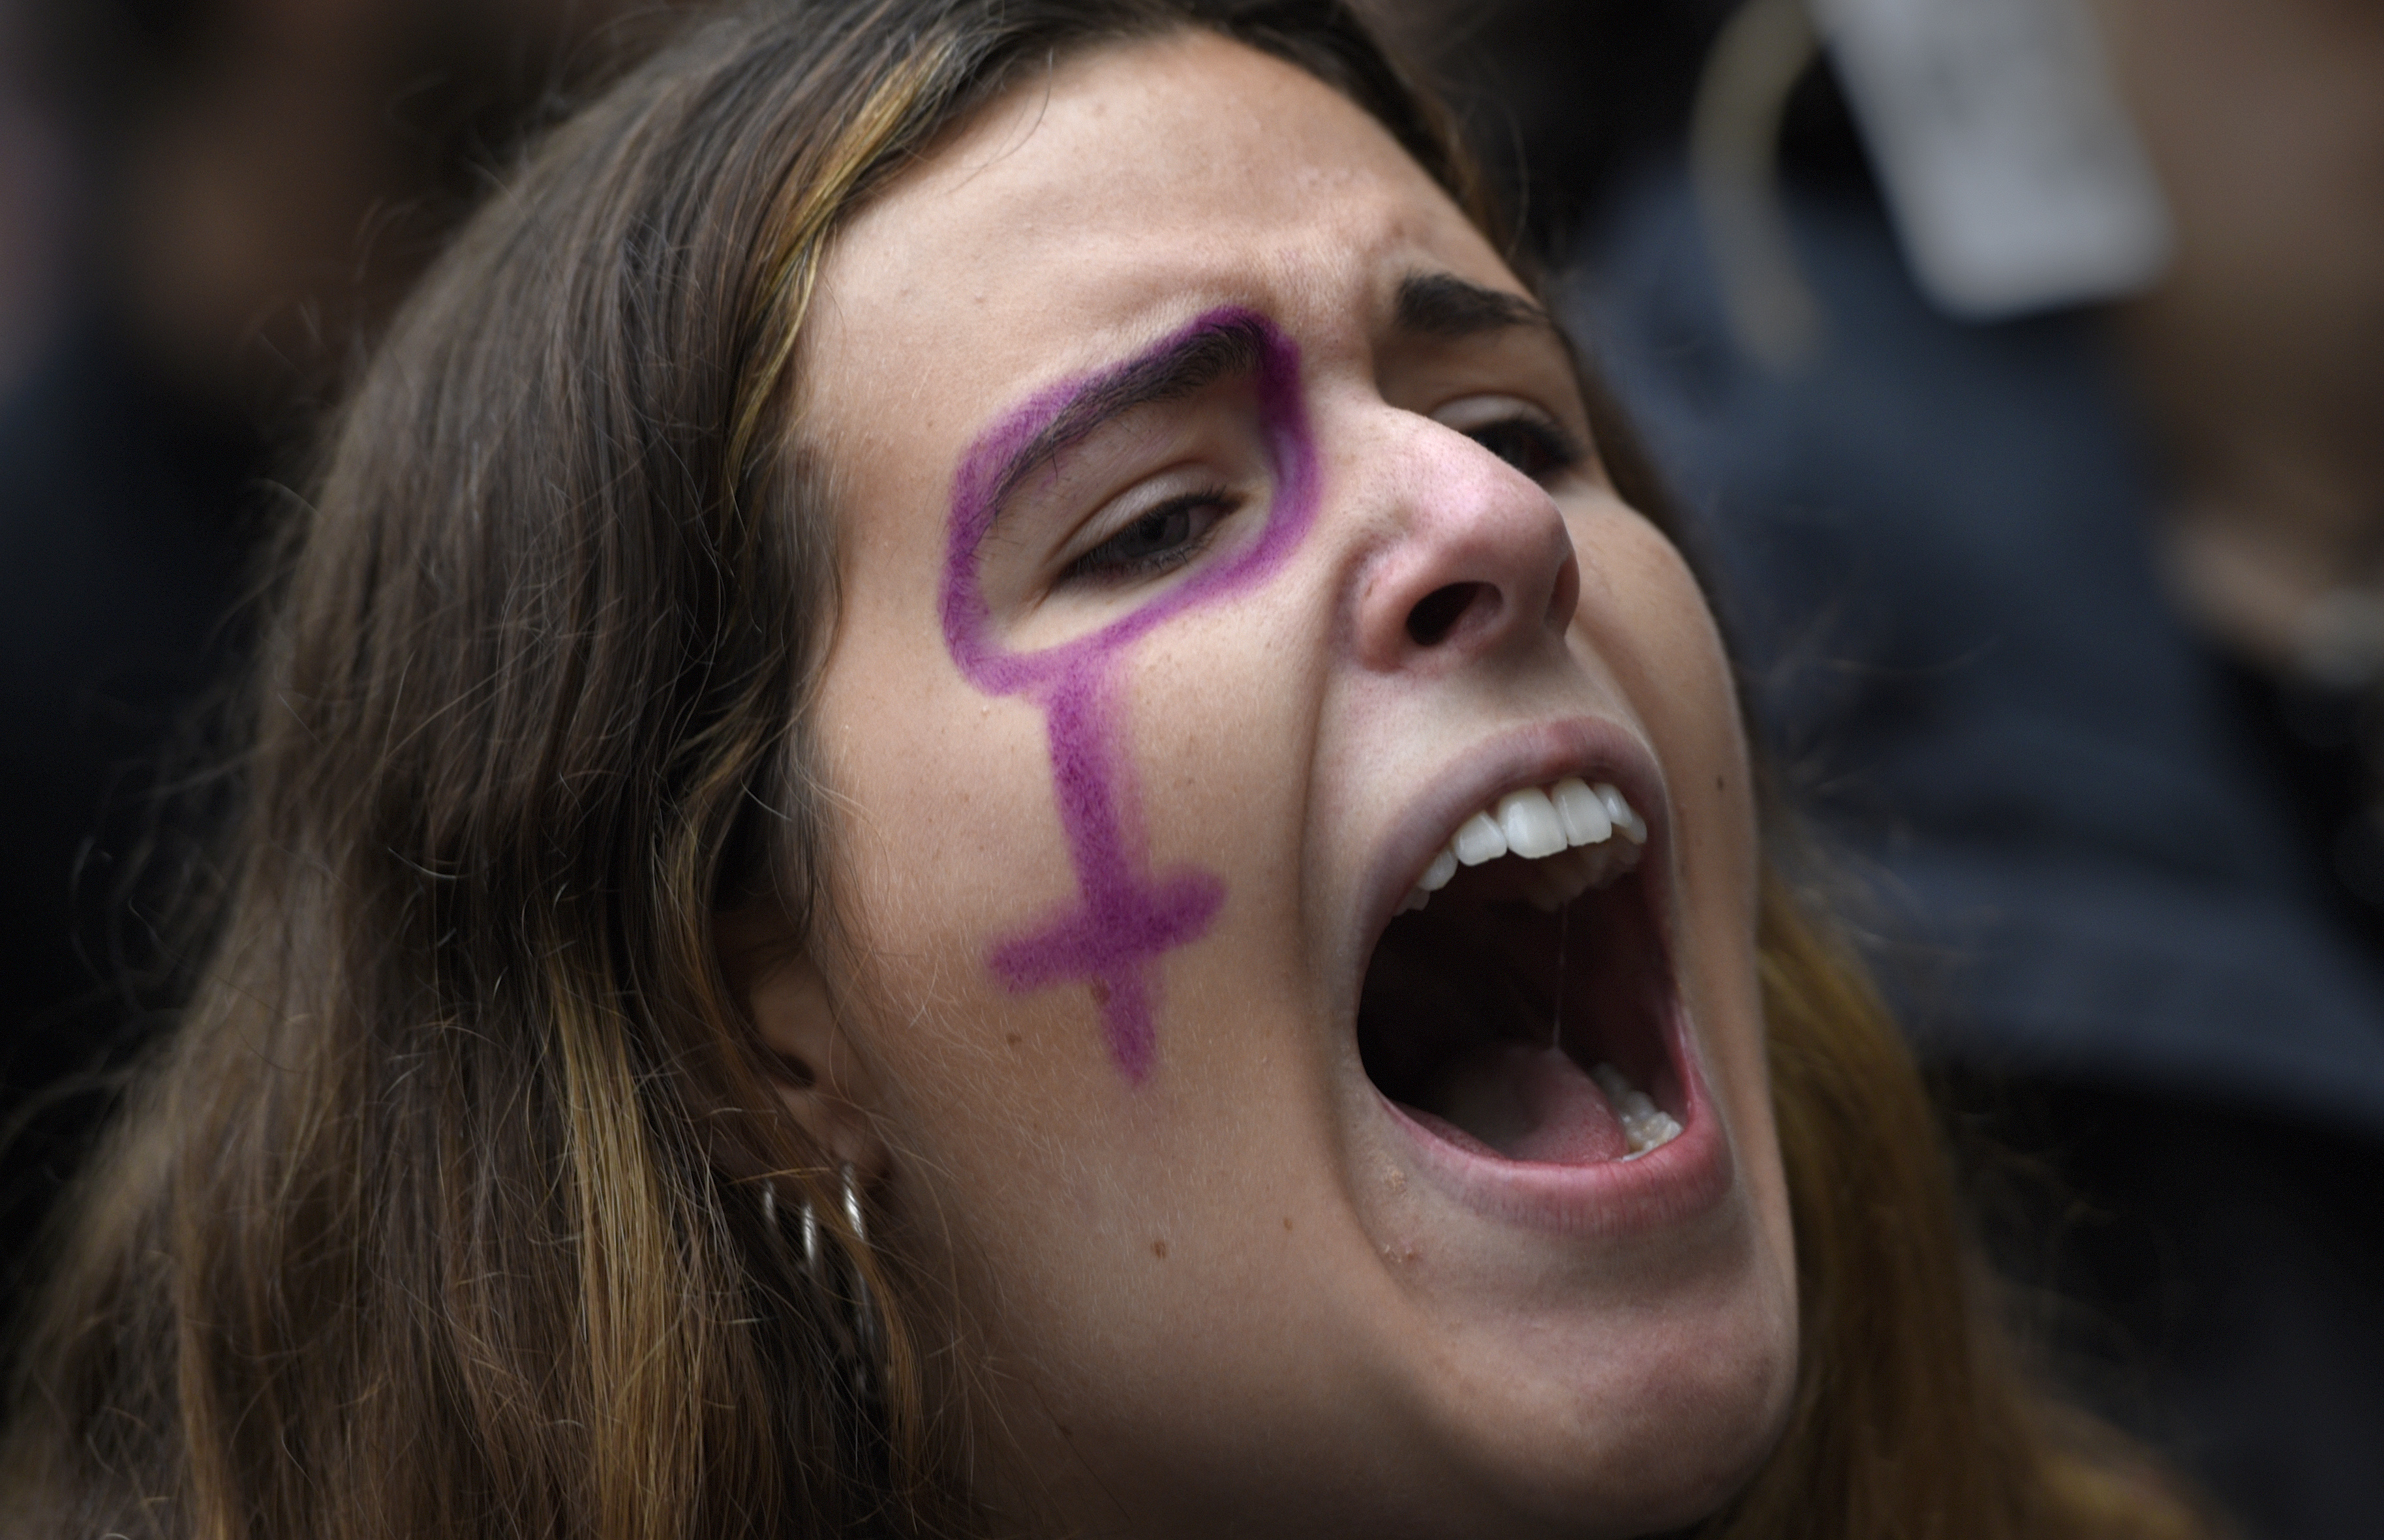 A woman shouts a slogan during the rally on the International Day for the Elimination of Violence against Women in Oviedo, northern Spain, Nov. 25, 2017.